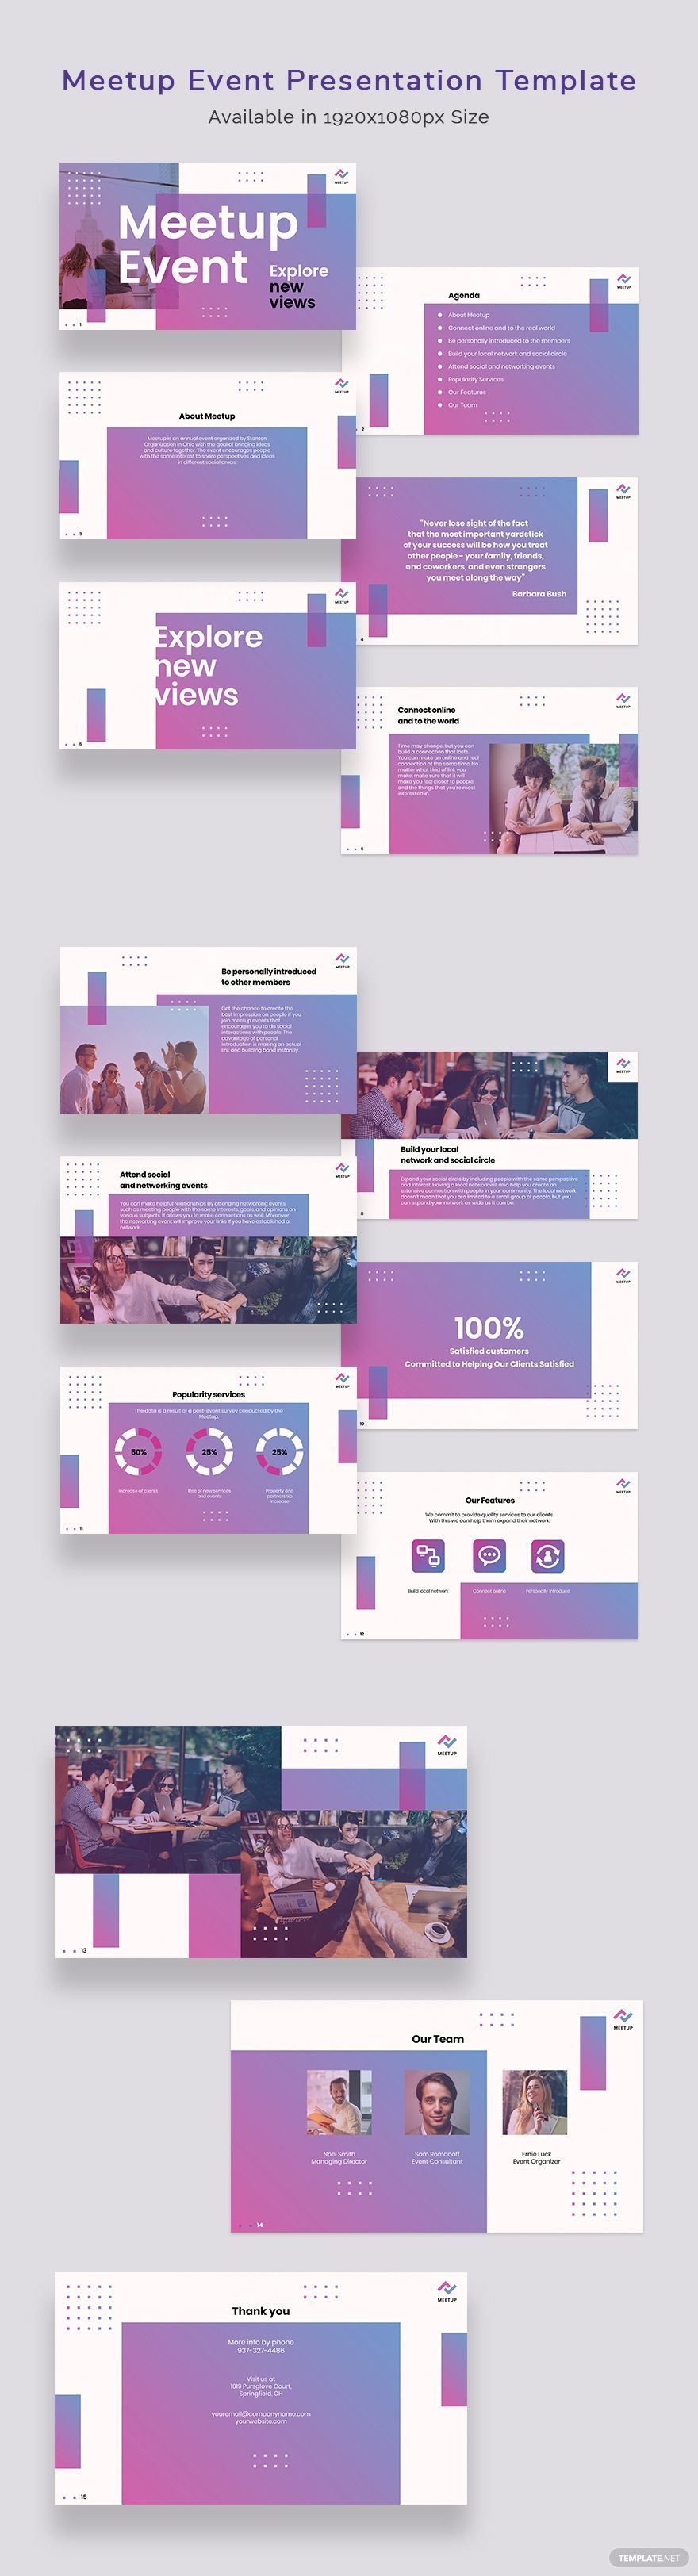 Meetup Event Presentation Template Pdf Word Apple Pages Google Docs Powerpoint Apple Keynote Google Slides Event Poster Template Presentation Templates Event Invitation Templates